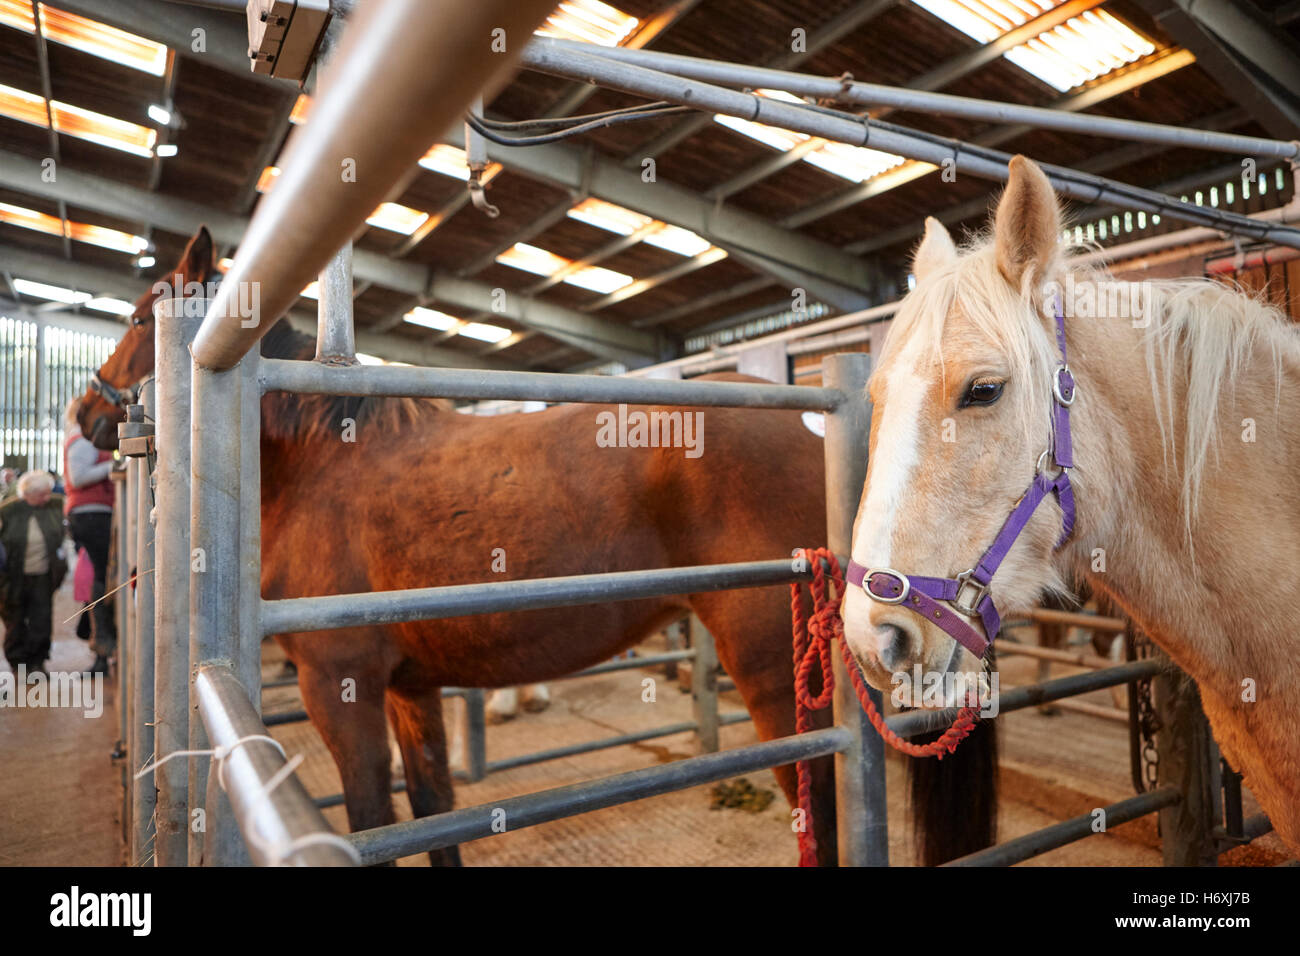 horses to be auctioned at horse and livestock auction barn beeston castle england uk - Stock Image